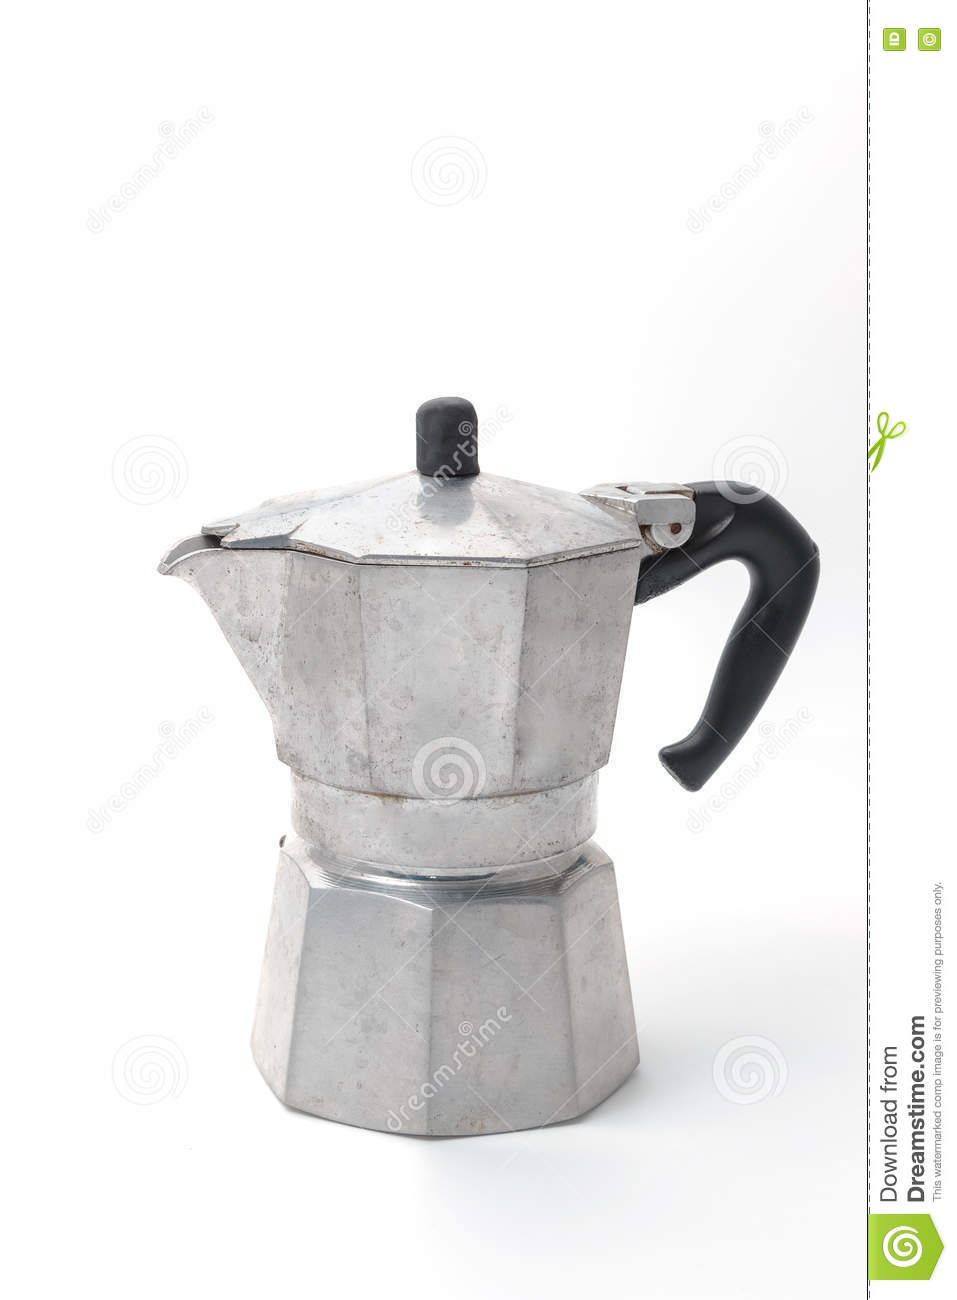 Old Coffee Maker In Vintage Style Isolated Stock Photo - Image: 80834936